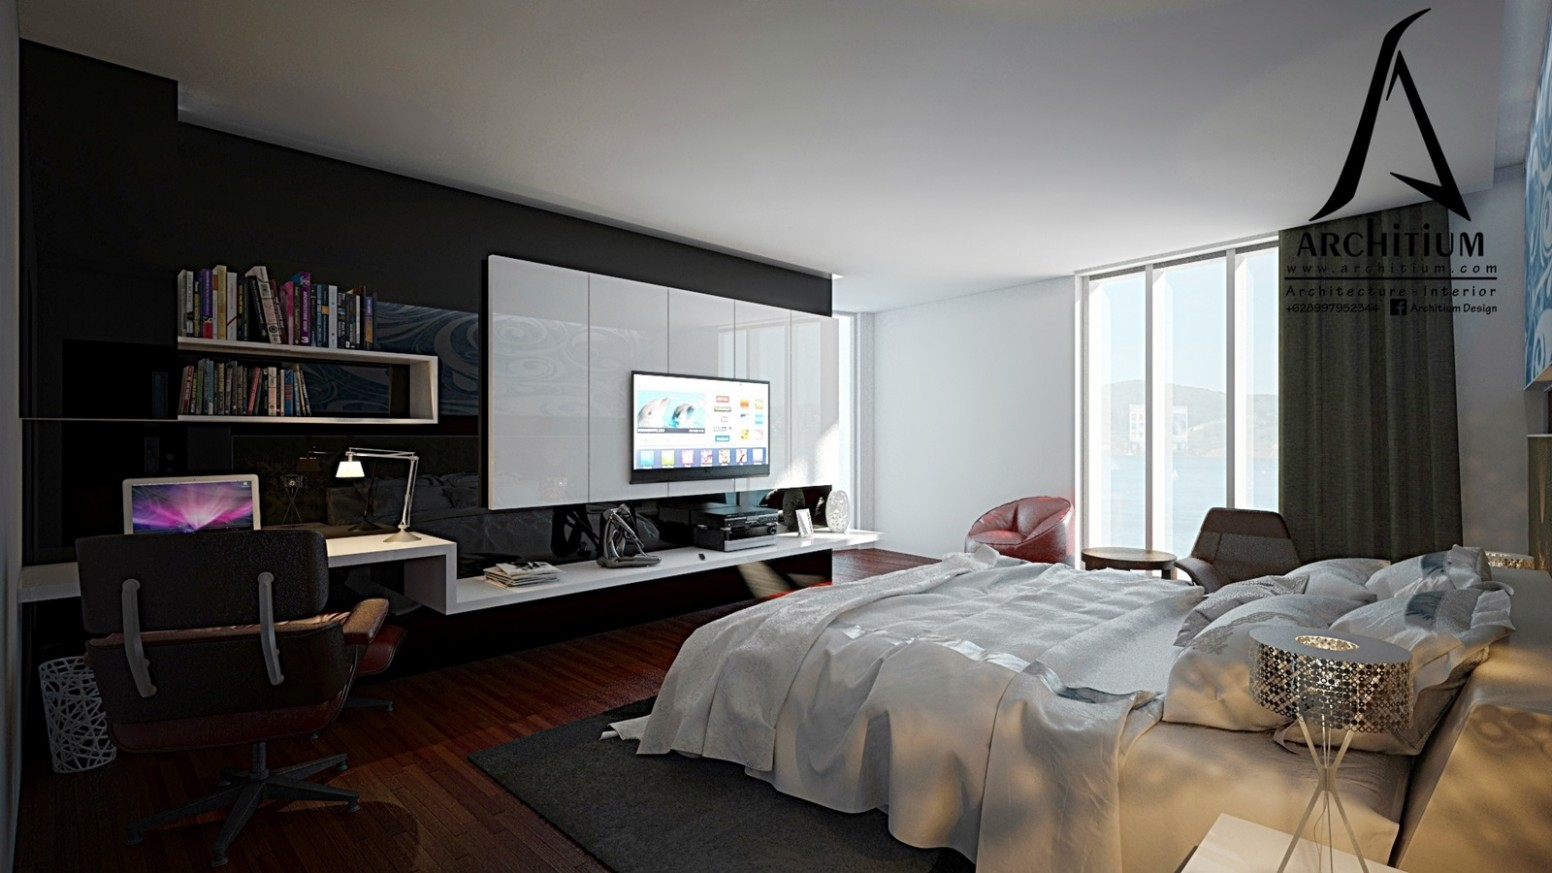 Bedroom Apartment Design Archives - Architium - Apartment Interior Design Jakarta